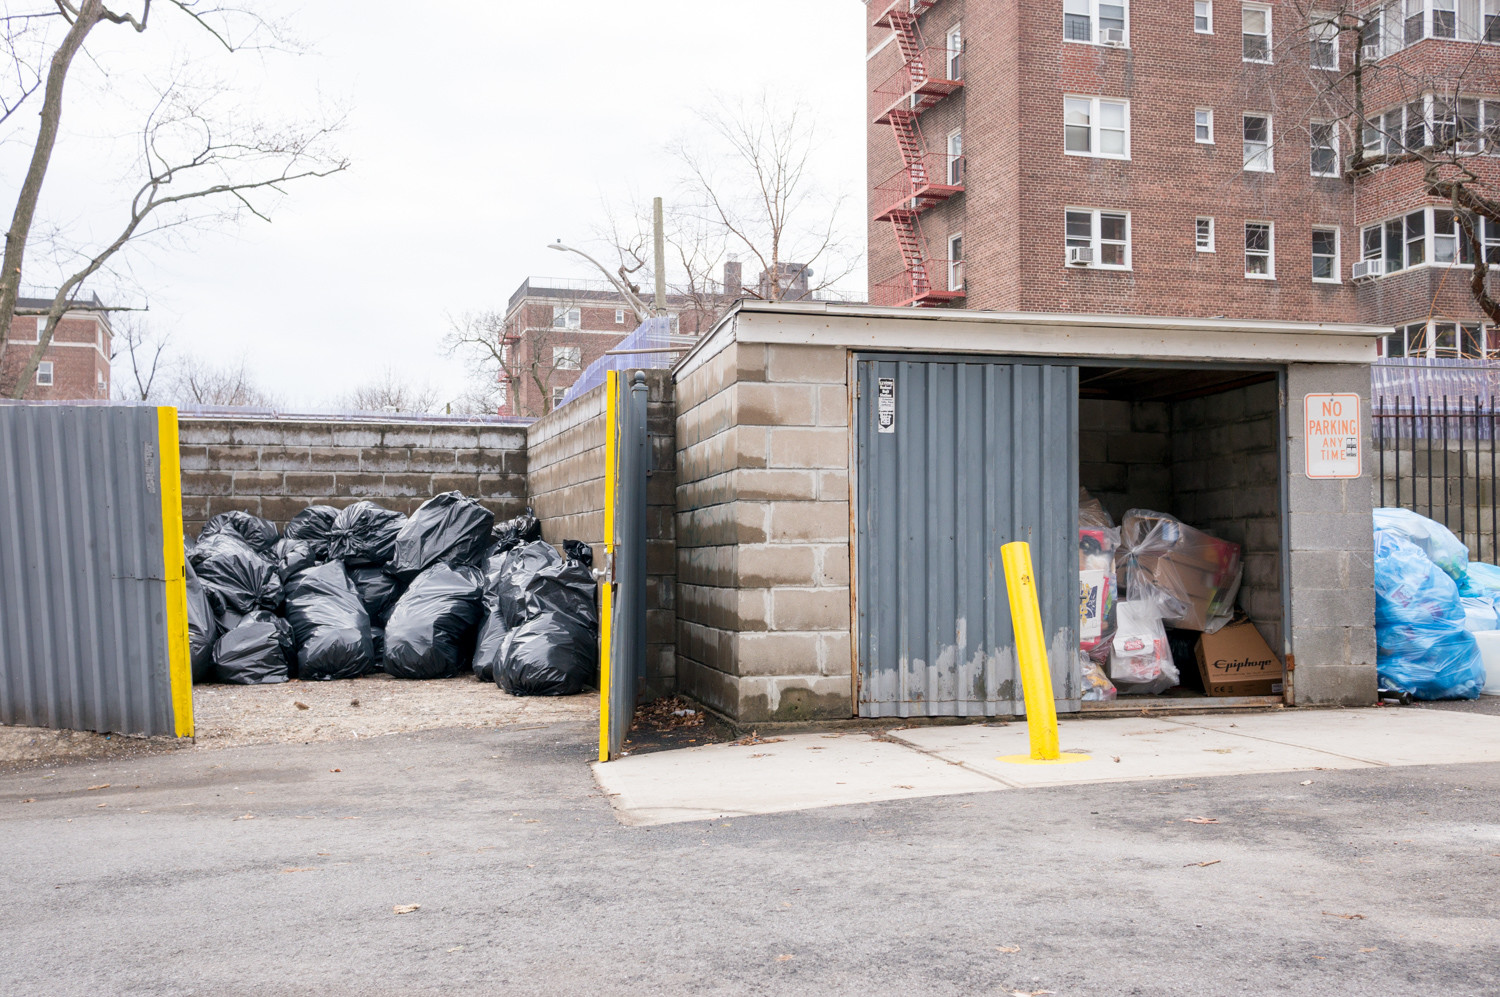 A row of dumpsters and a bleak cinderblock wall on Netherland Avenue between West 254th and West 256th streets is a major obstacle for pedestrians. But that could change if the city finally decides to add sidewalks to one side of the street.